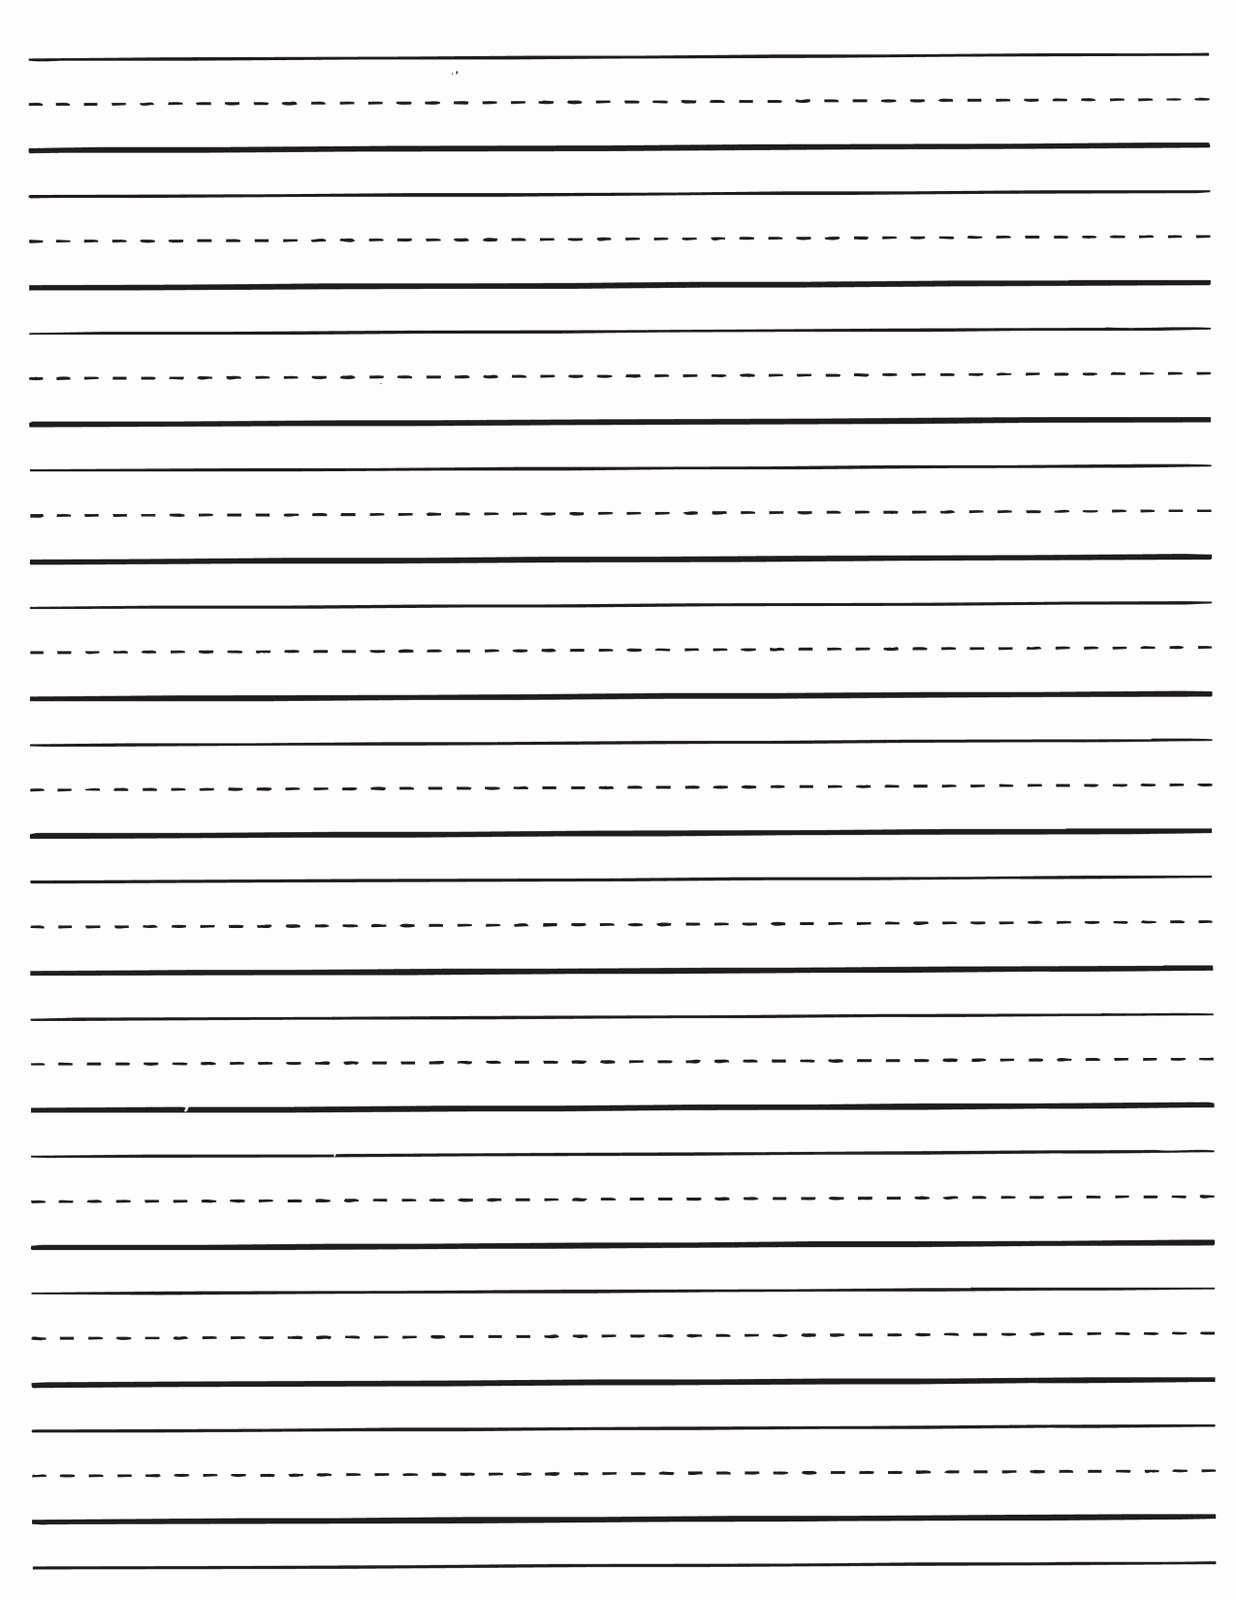 Free Lined Stationery Templates Best Of Free Printable Lined Handwriting Paper Printable Pages